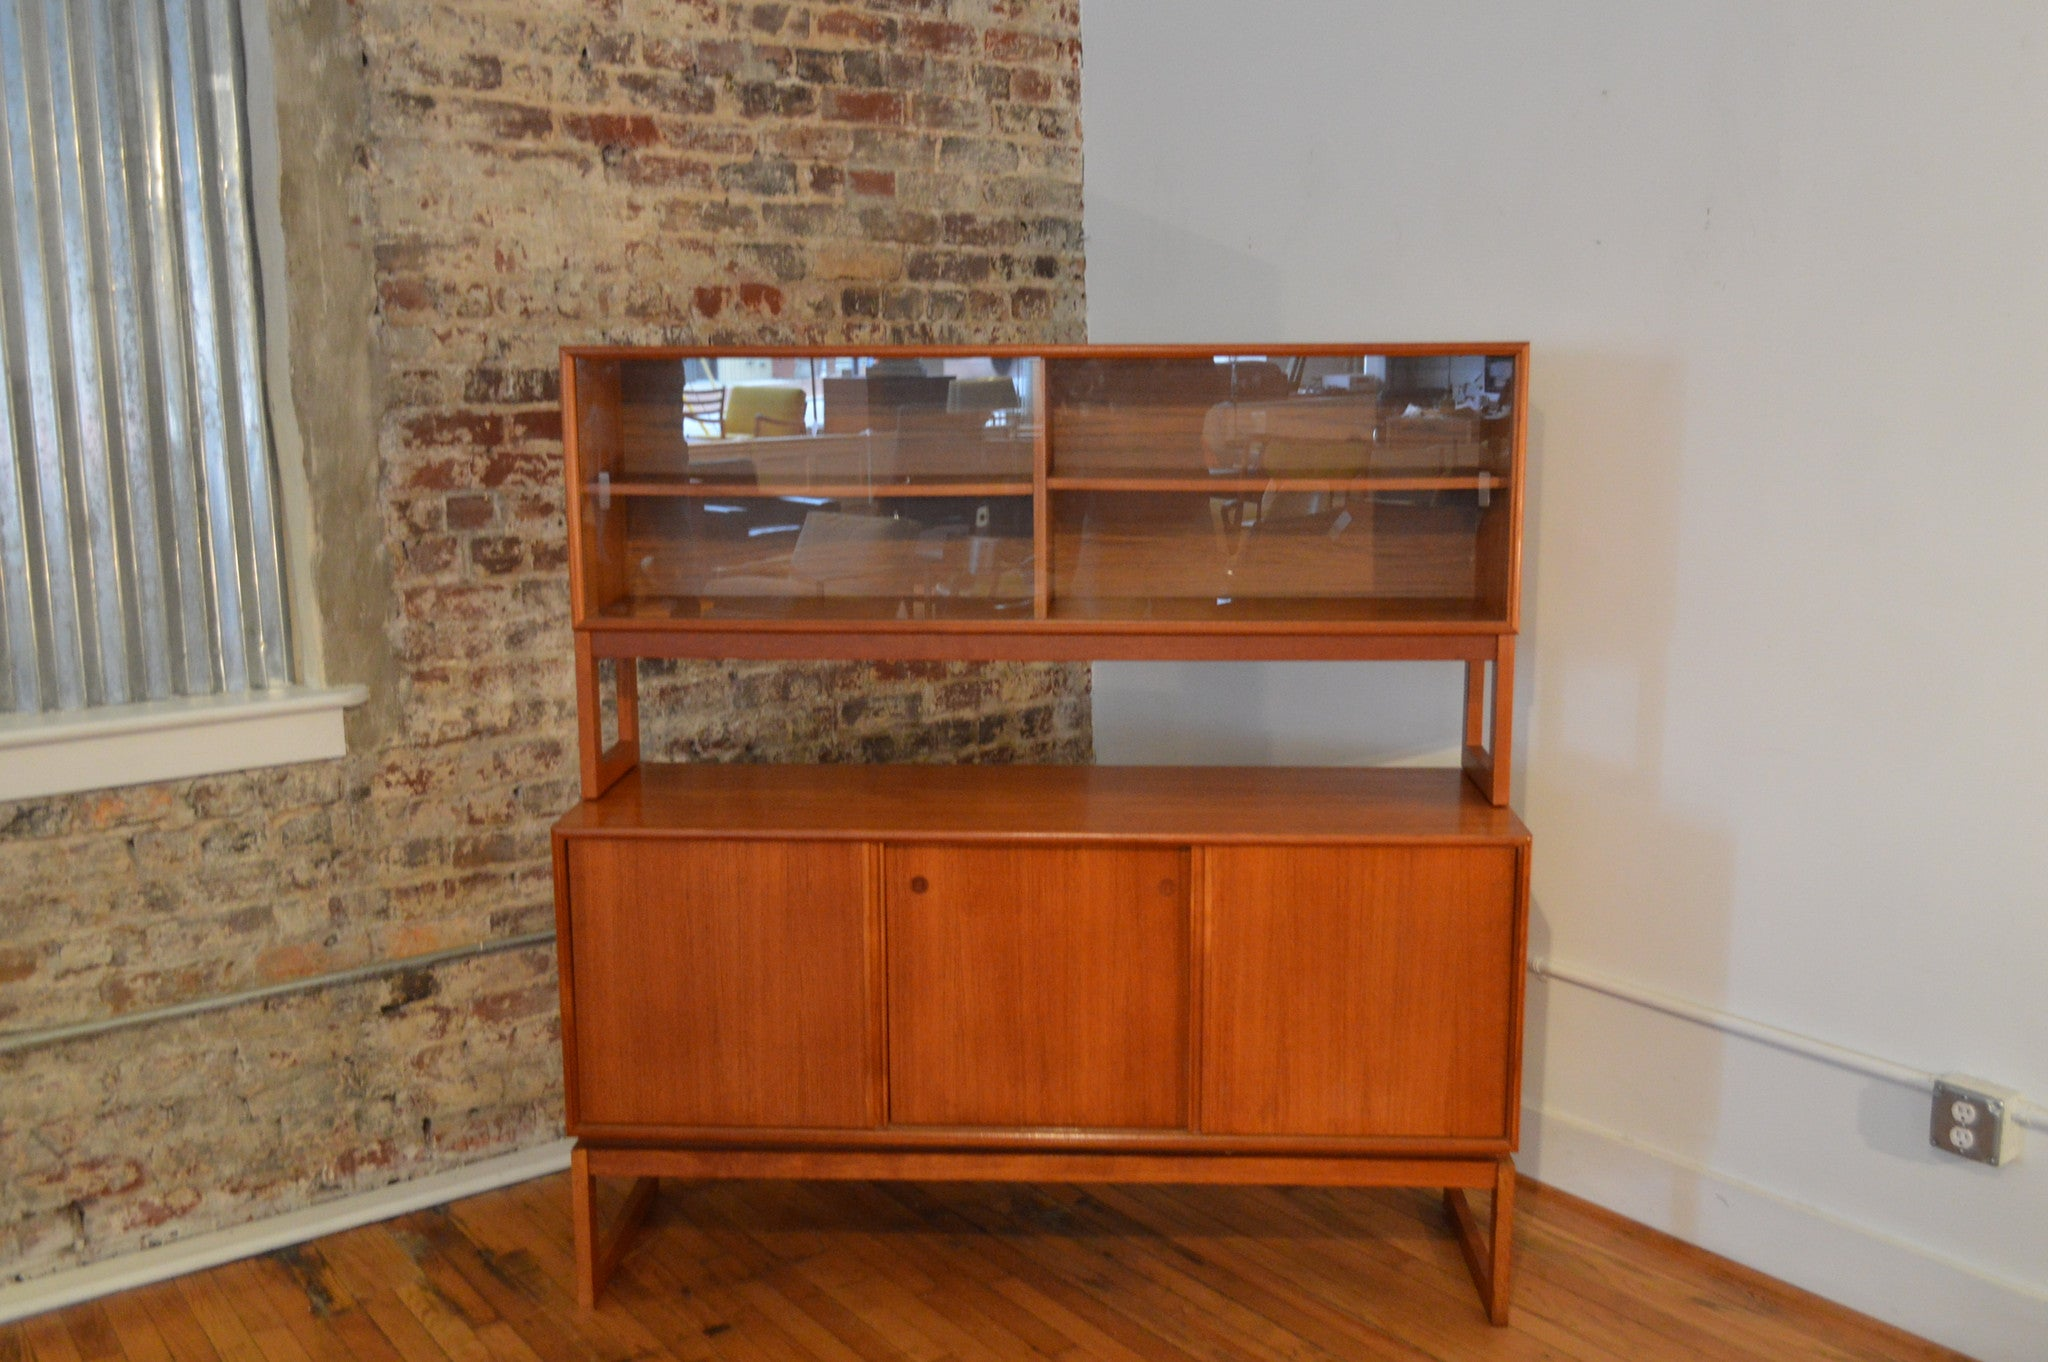 view with gallery mission of hutch style special furniture interior uncle sideboard photos attachment rocket image throughout sideboards